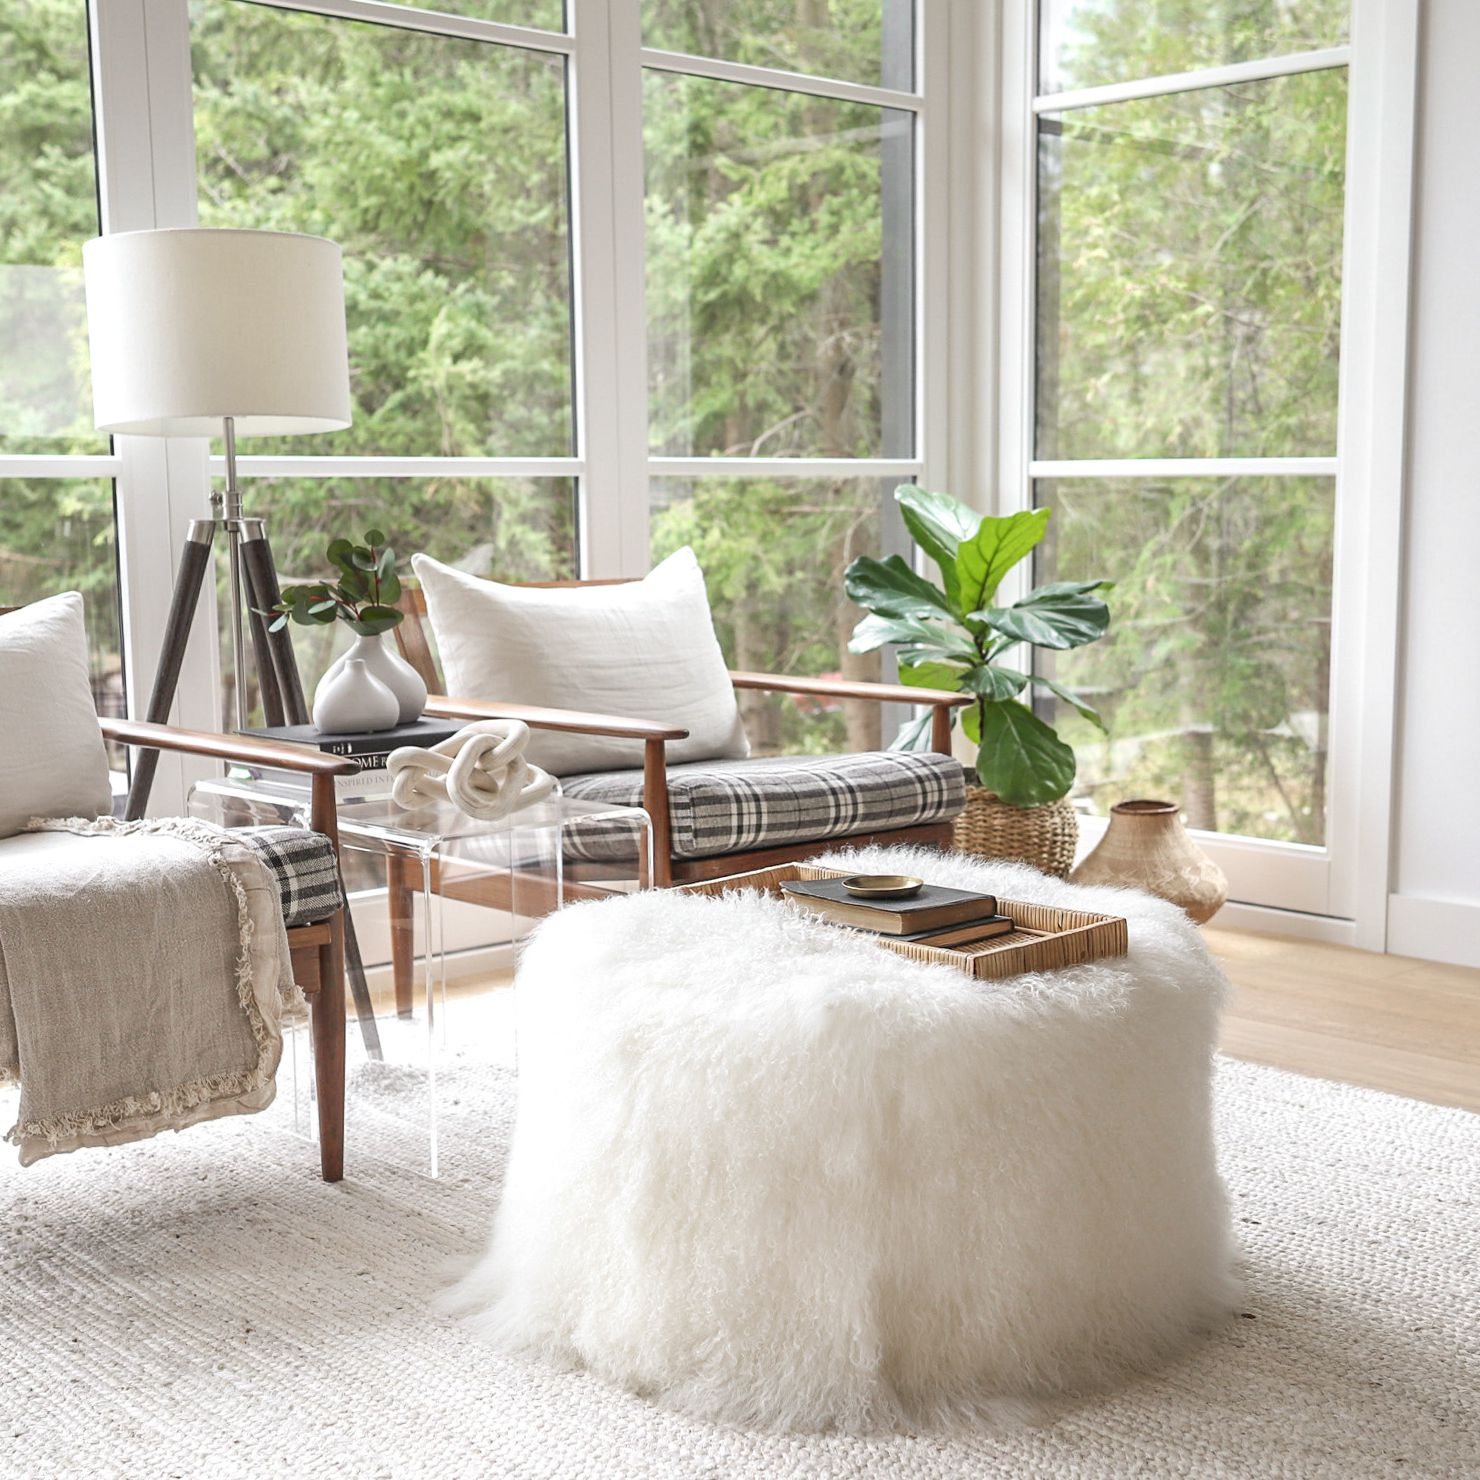 Small Coffee Tables For Living Rooms, Tables For Living Rooms